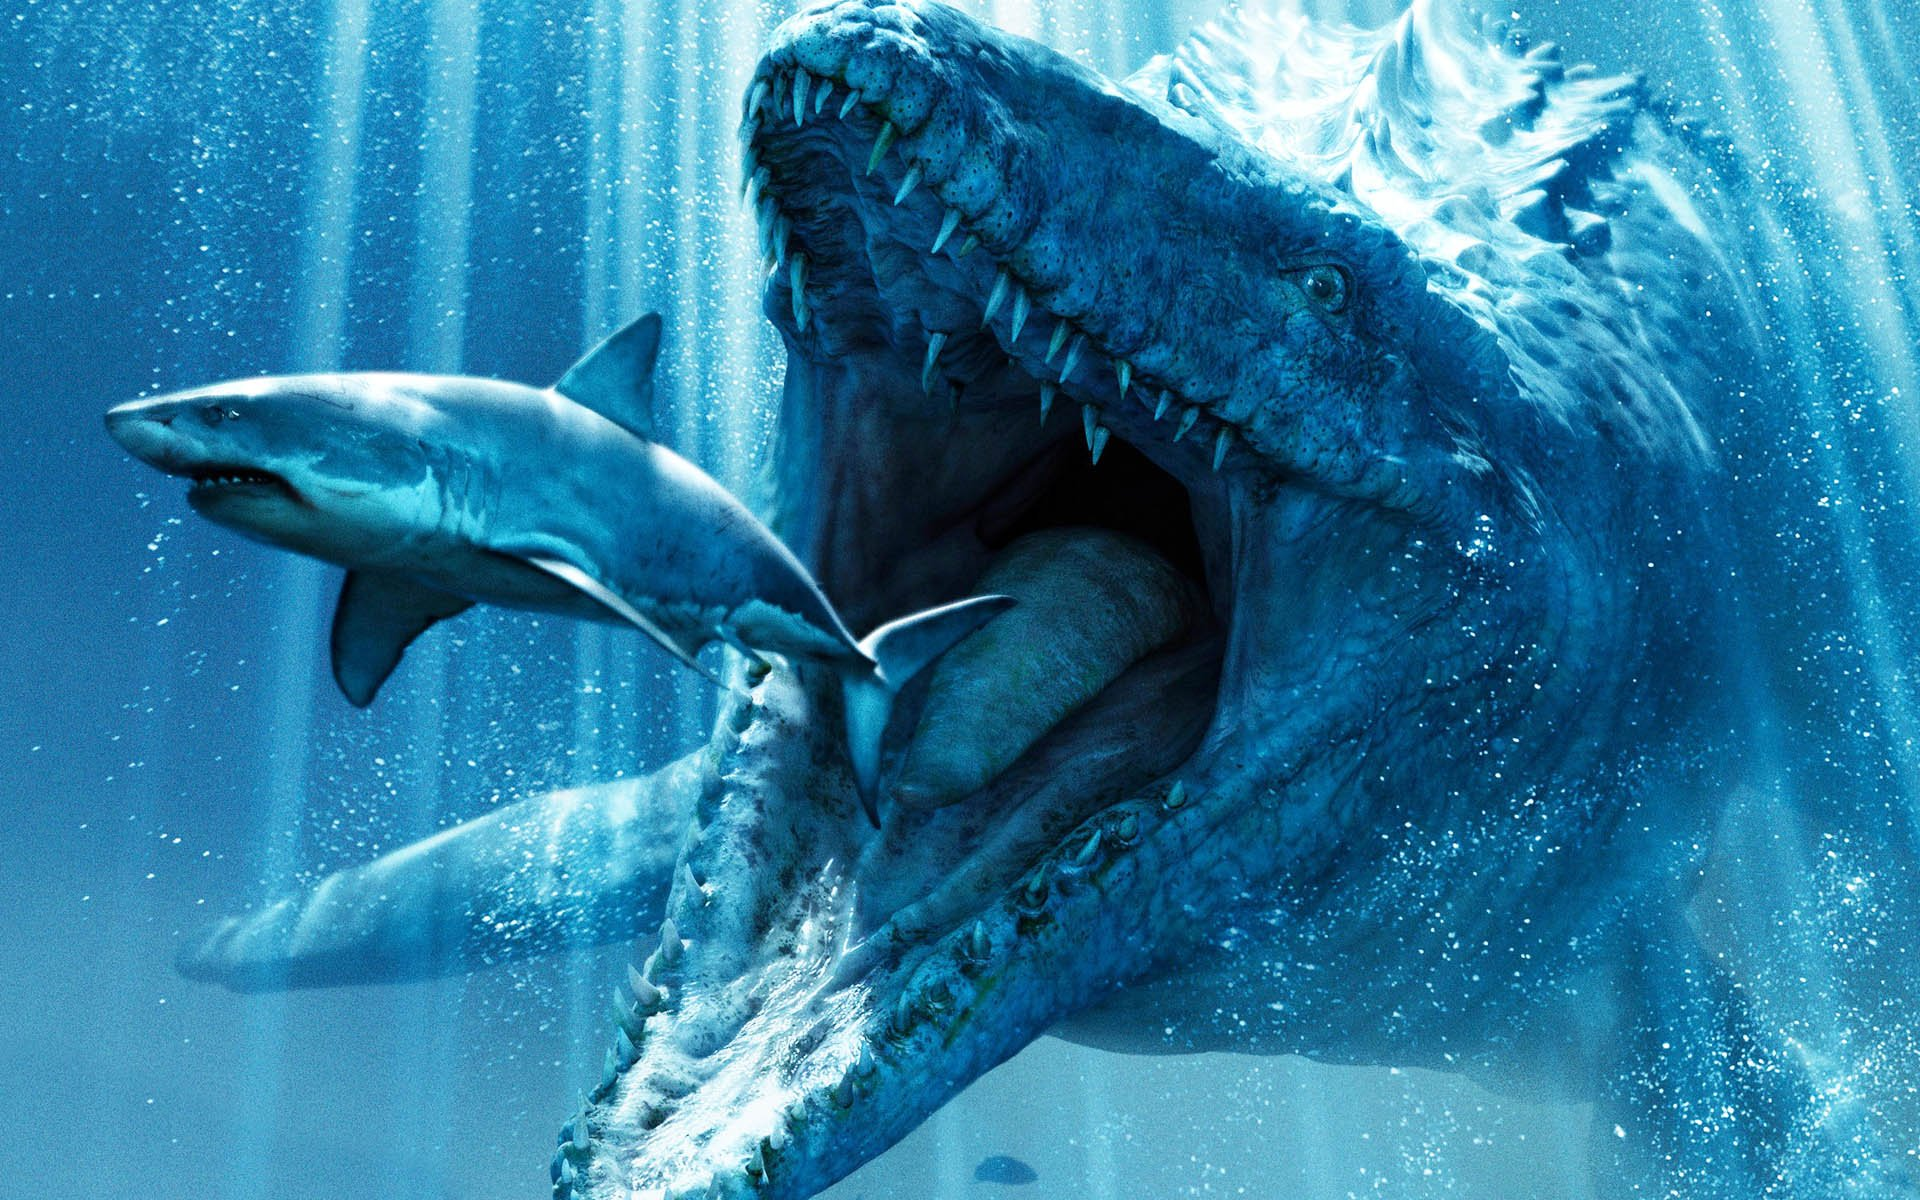 Mermaid Wallpaper Iphone Jurassic World Wallpapers Wallpapers High Quality